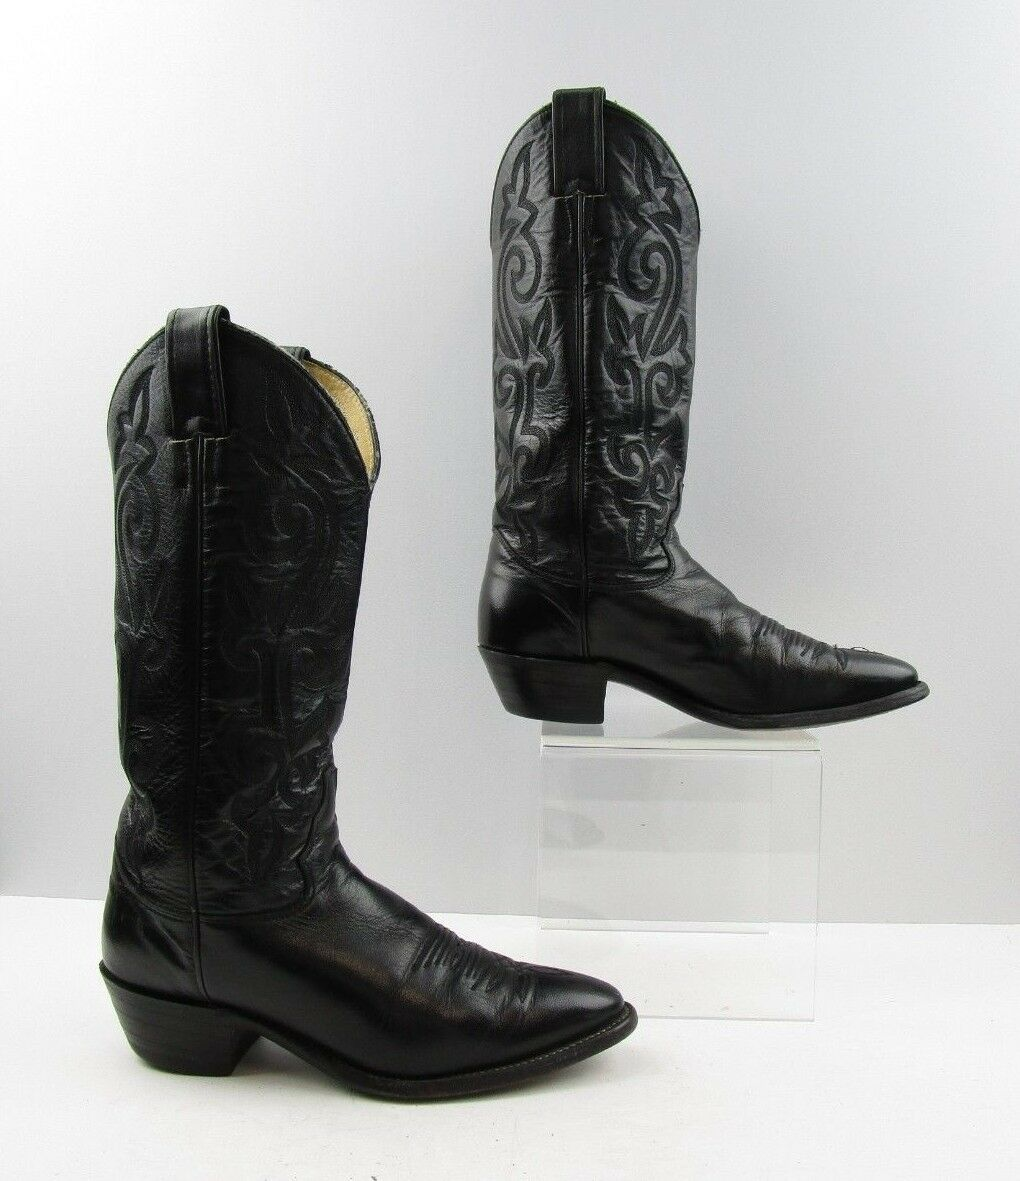 Ladies Justin Black Leather Cowboy Western Boots Size  6.5 C WIDE